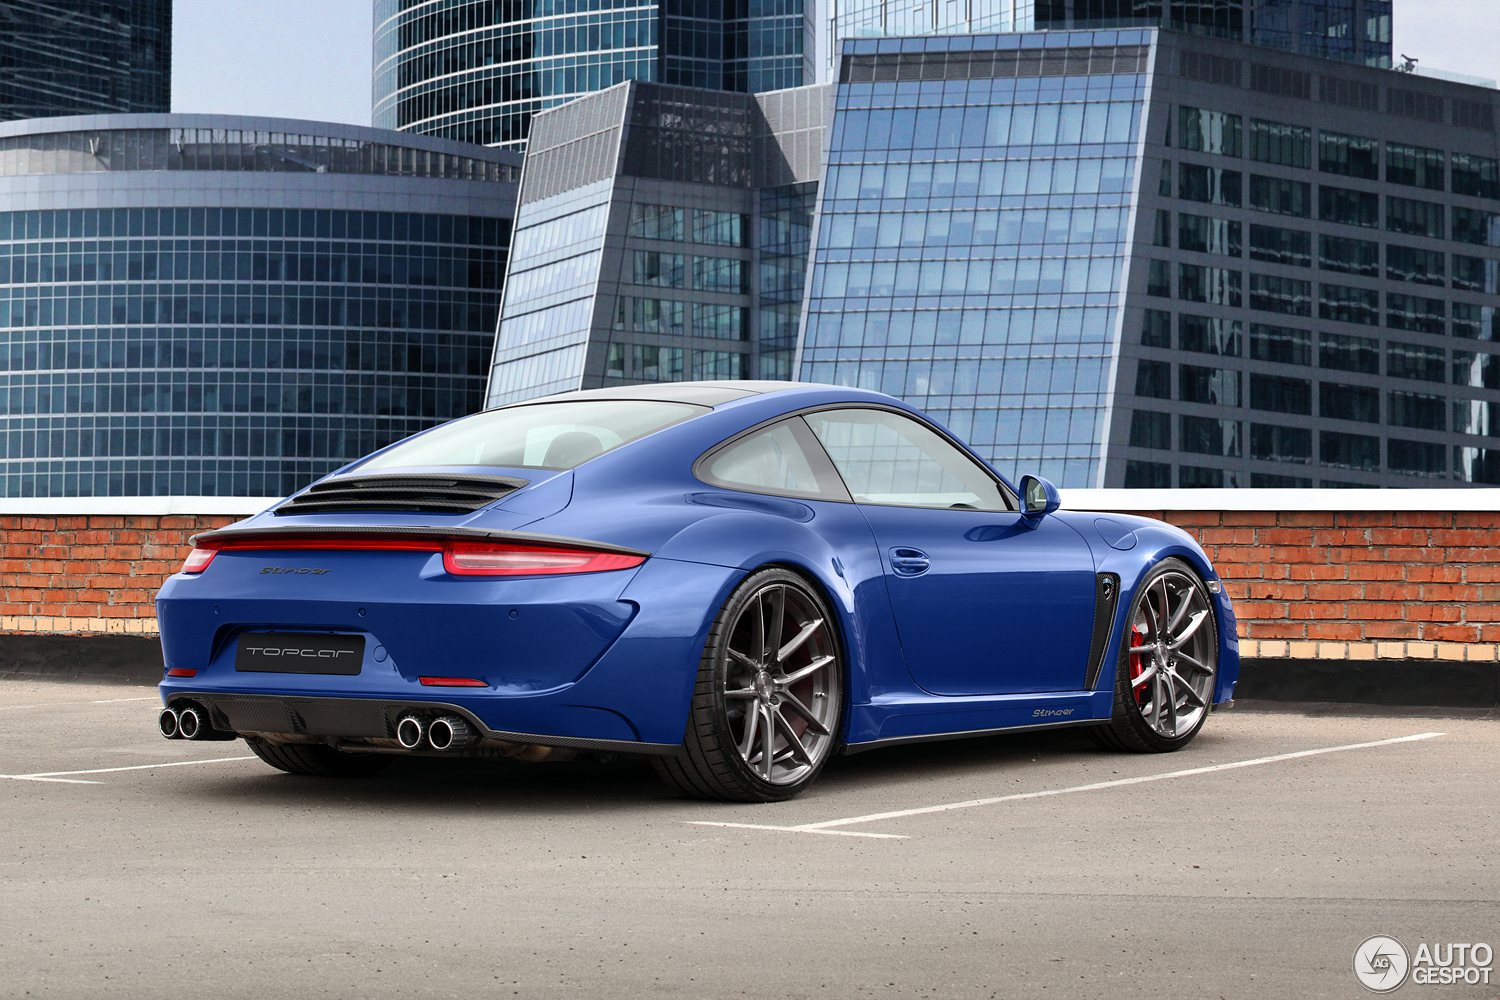 This Is The Porsche 991 Carrera 4s According To Topcar